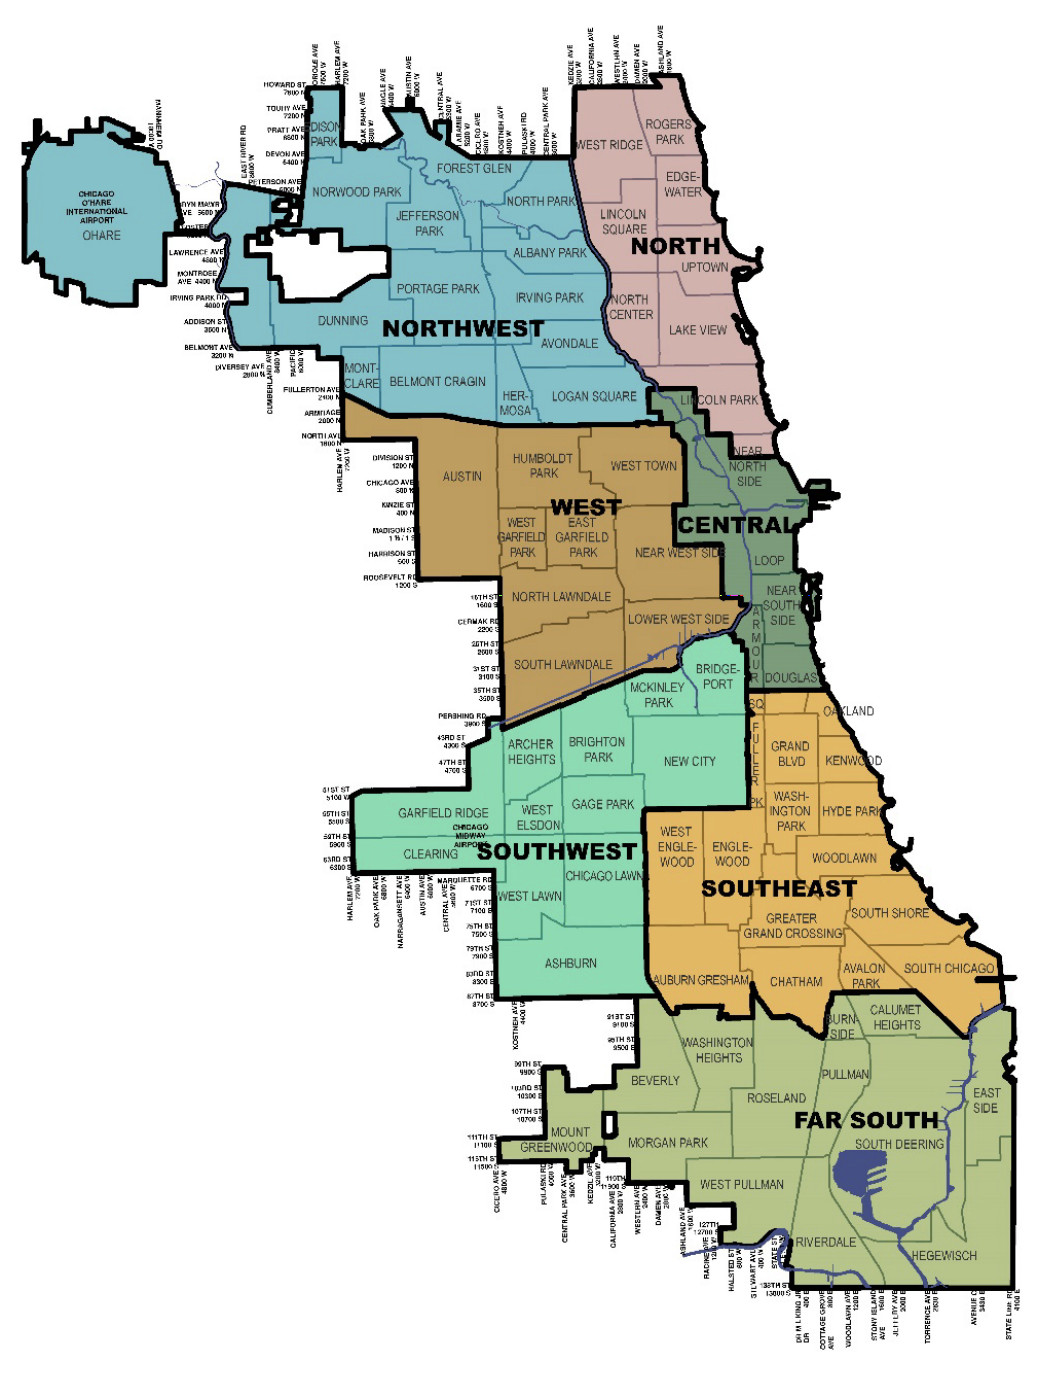 A map of Chicago separated into Northwest, North, West, Central, Southwest, Southeast, and Far South regions.